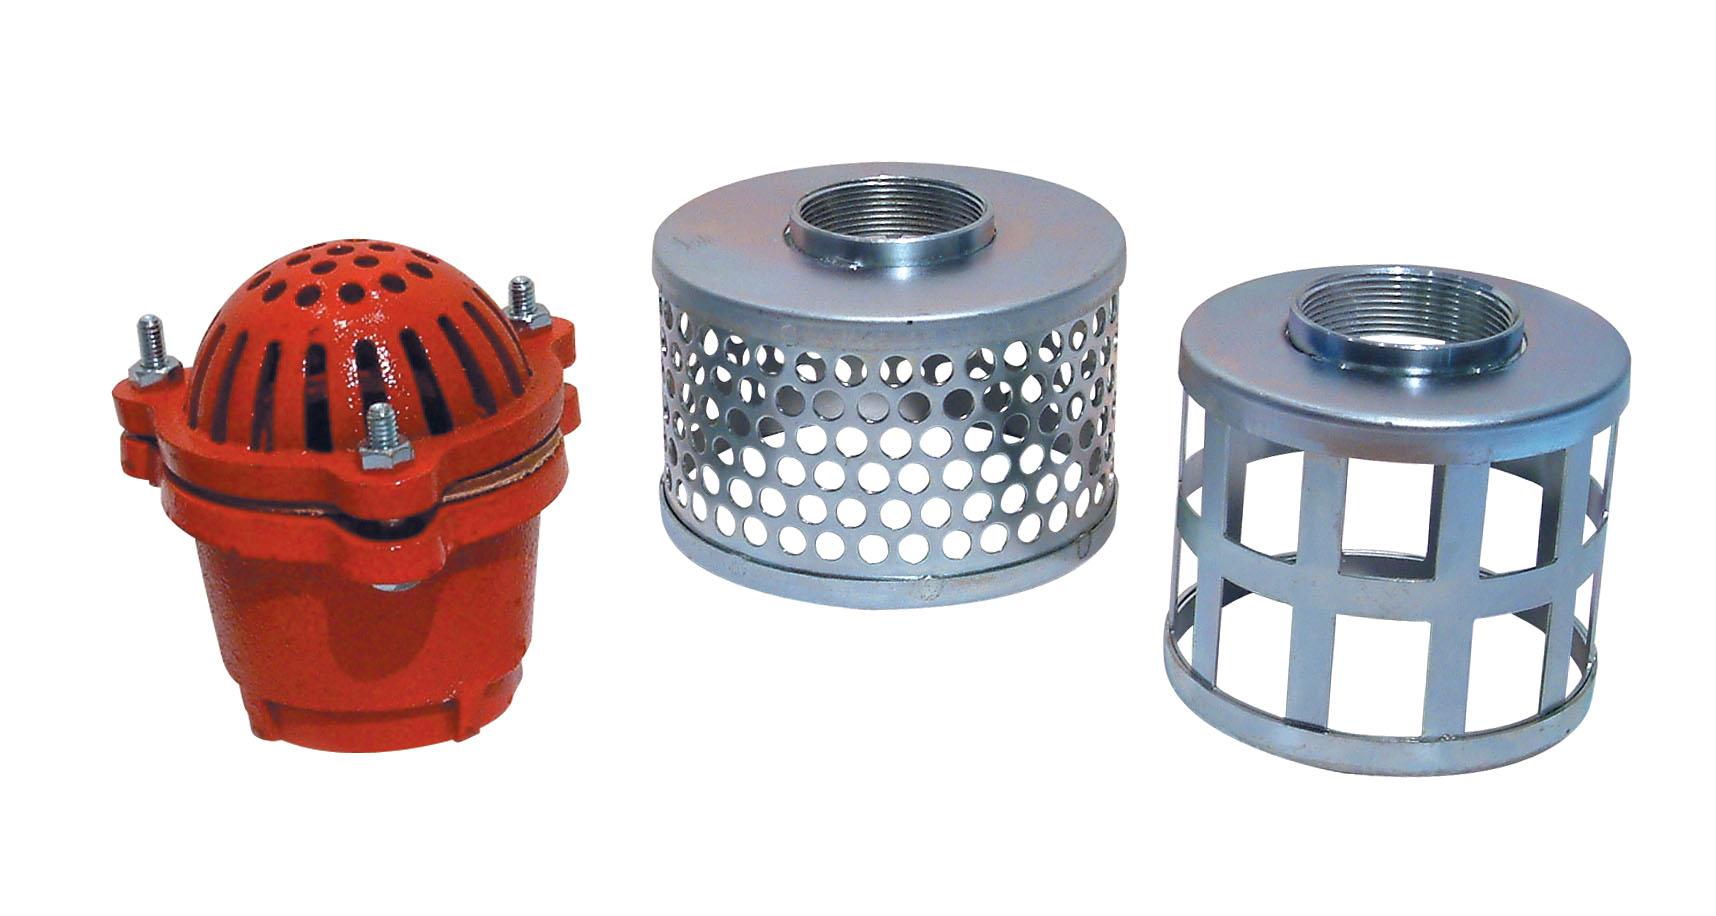 PicturesLogo/STRAINERS & FOOT VALVE.jpg